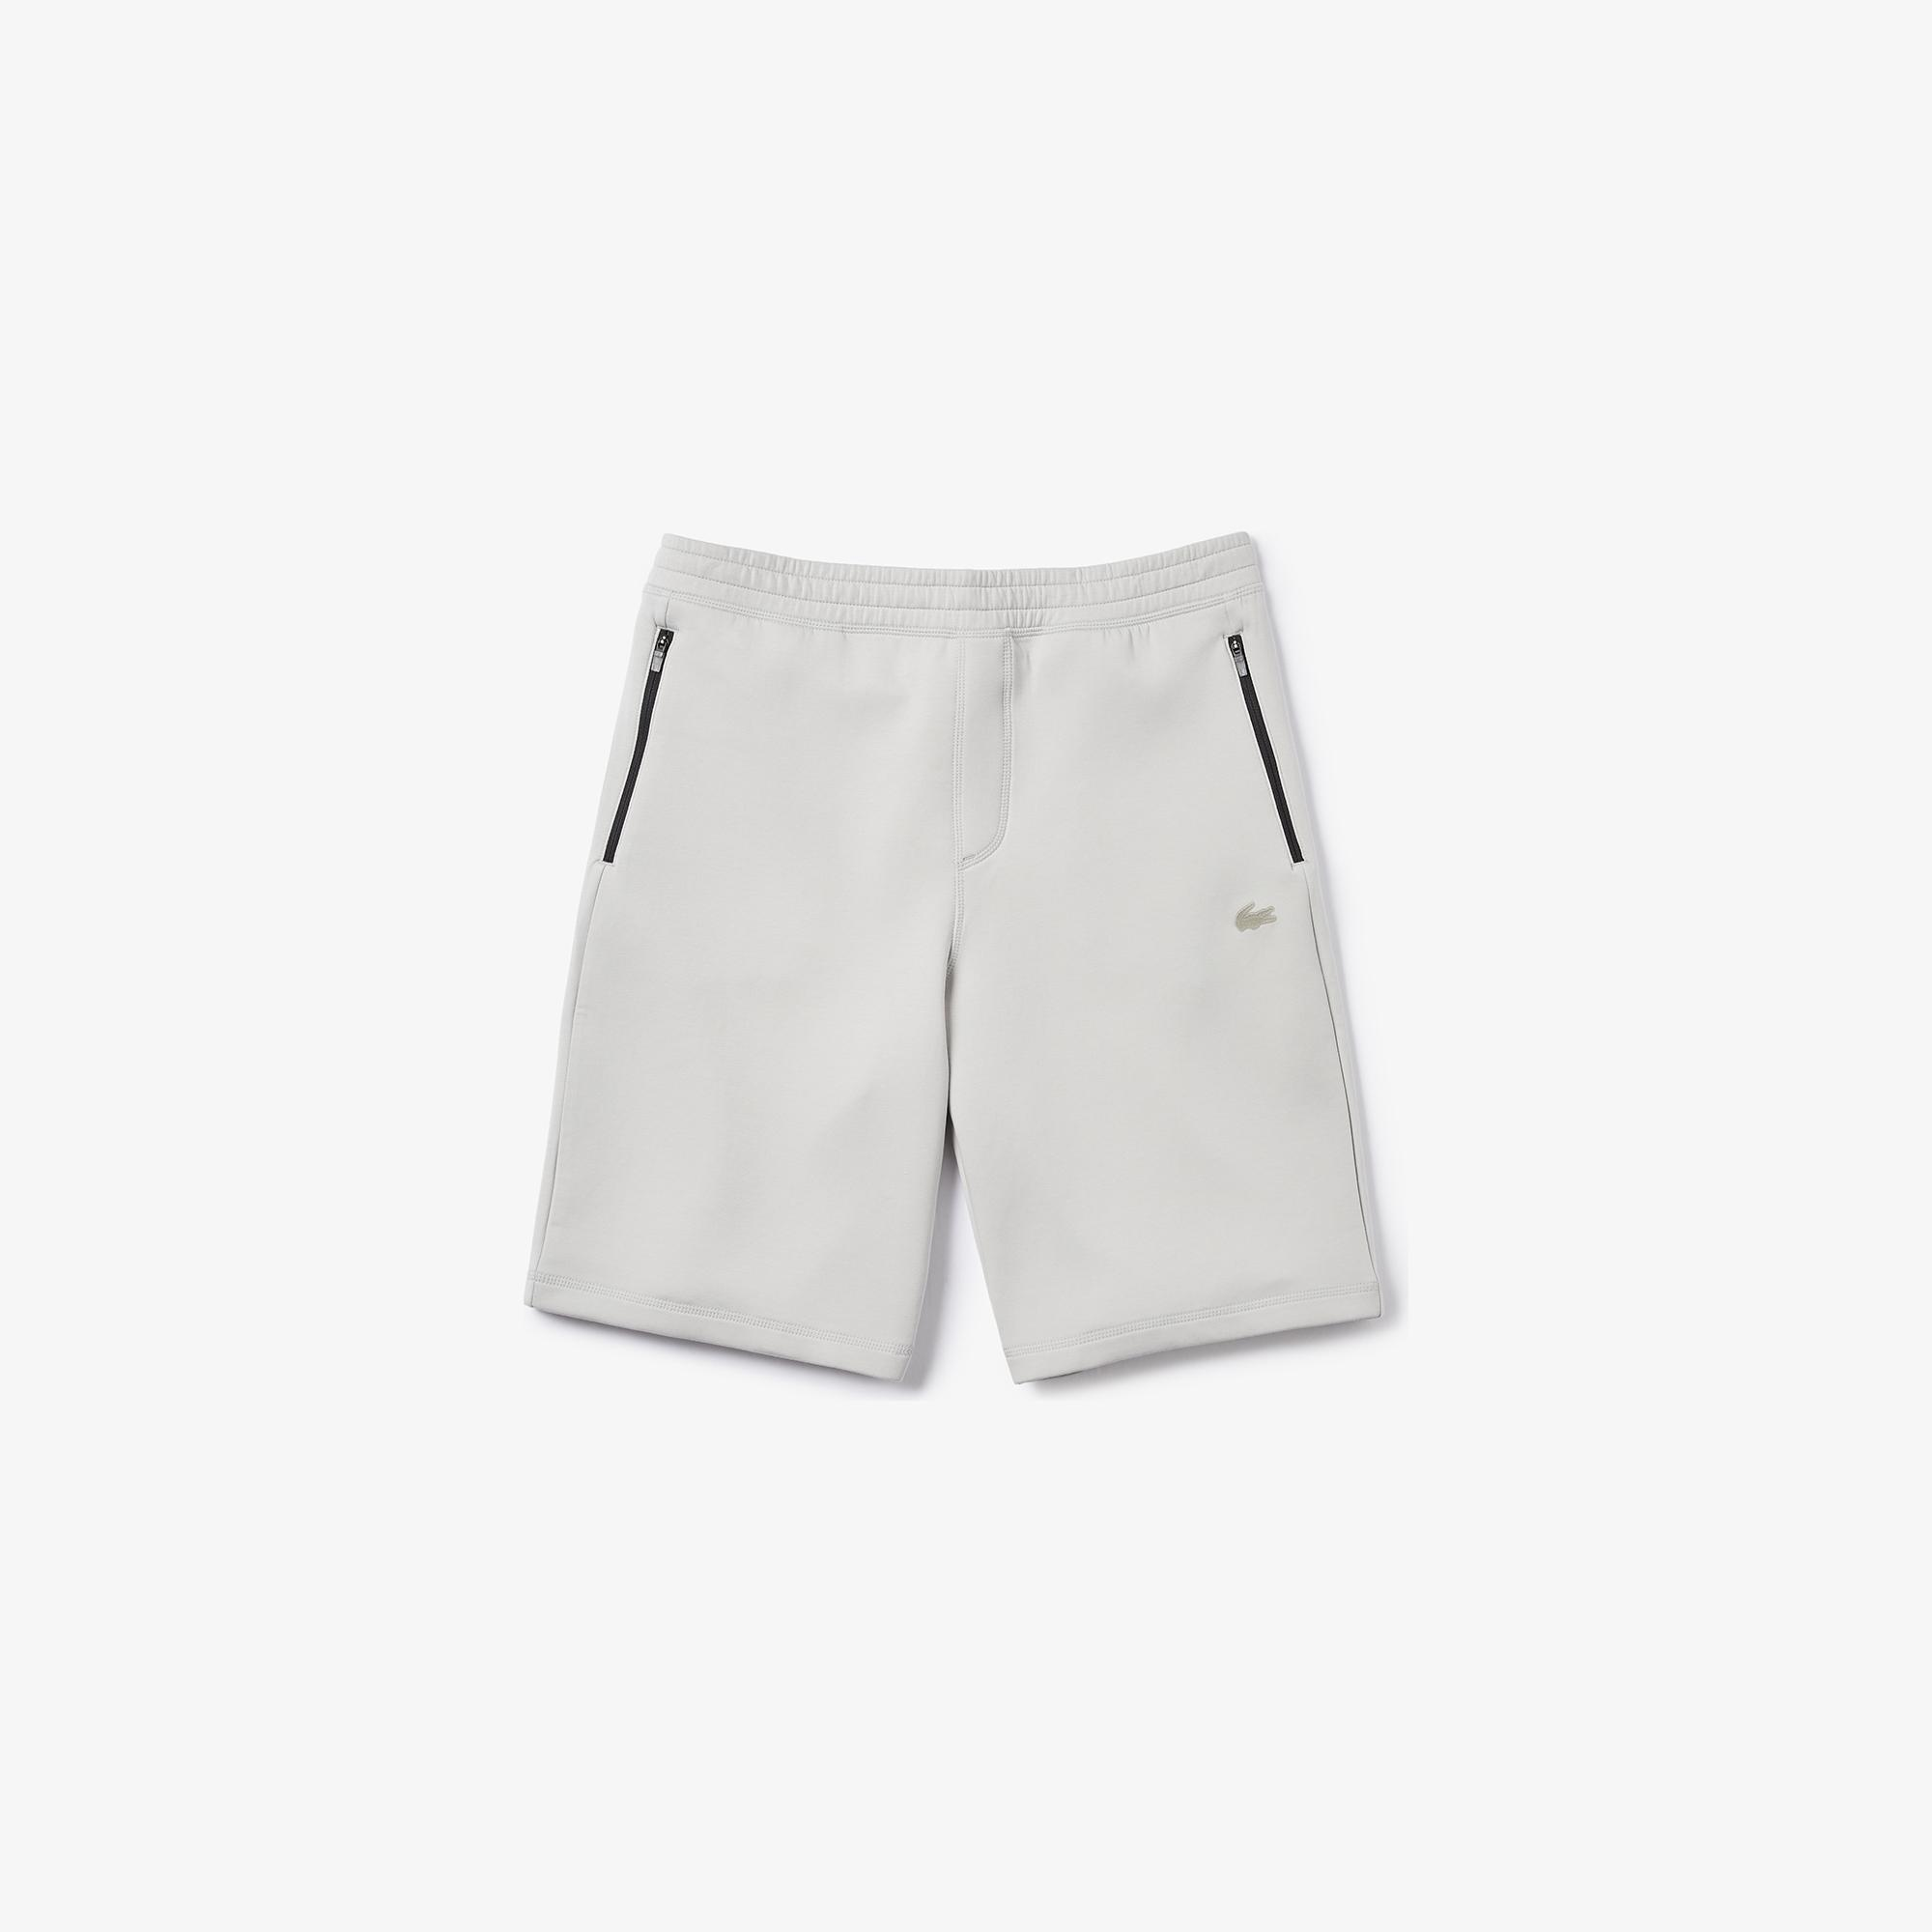 Lacoste Men's Motion Stretch Cotton Bermuda Shorts